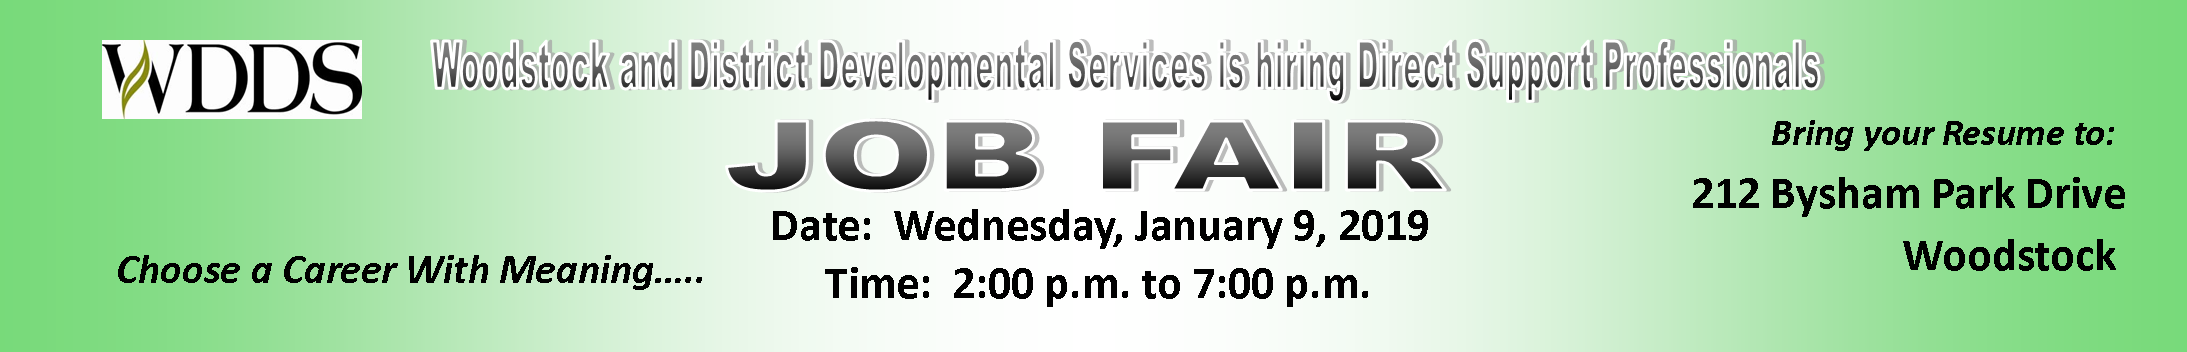 WDDS Job Fair January 9, 2019